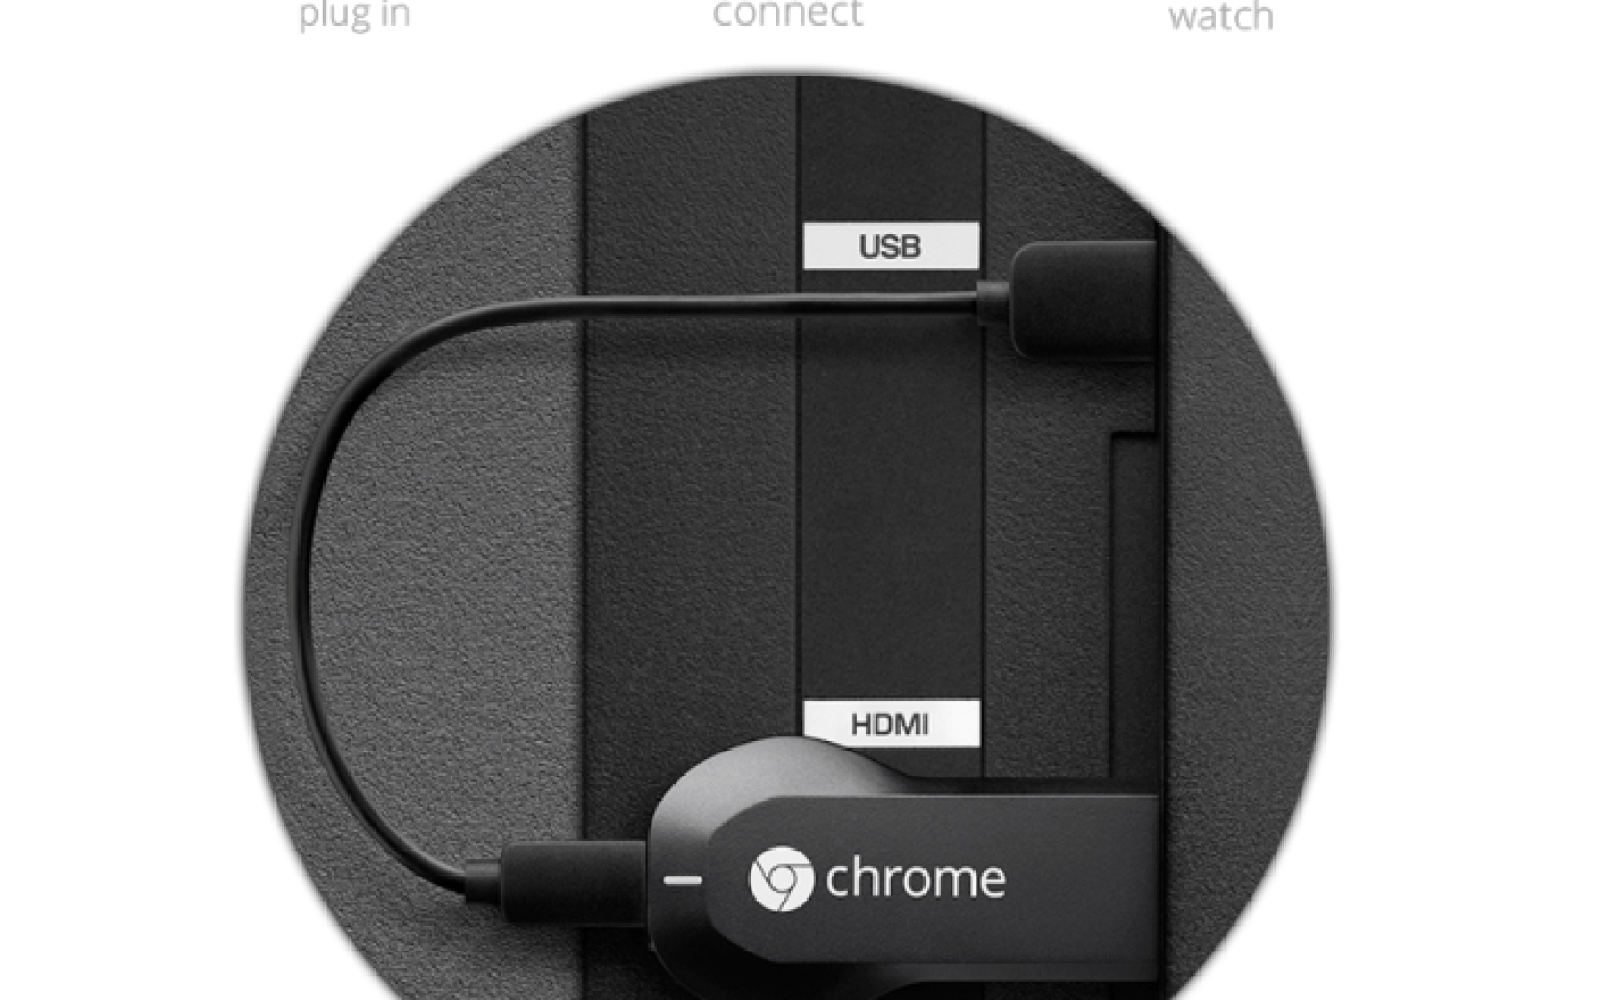 Google Chromecast streaming media player $30 w/ free